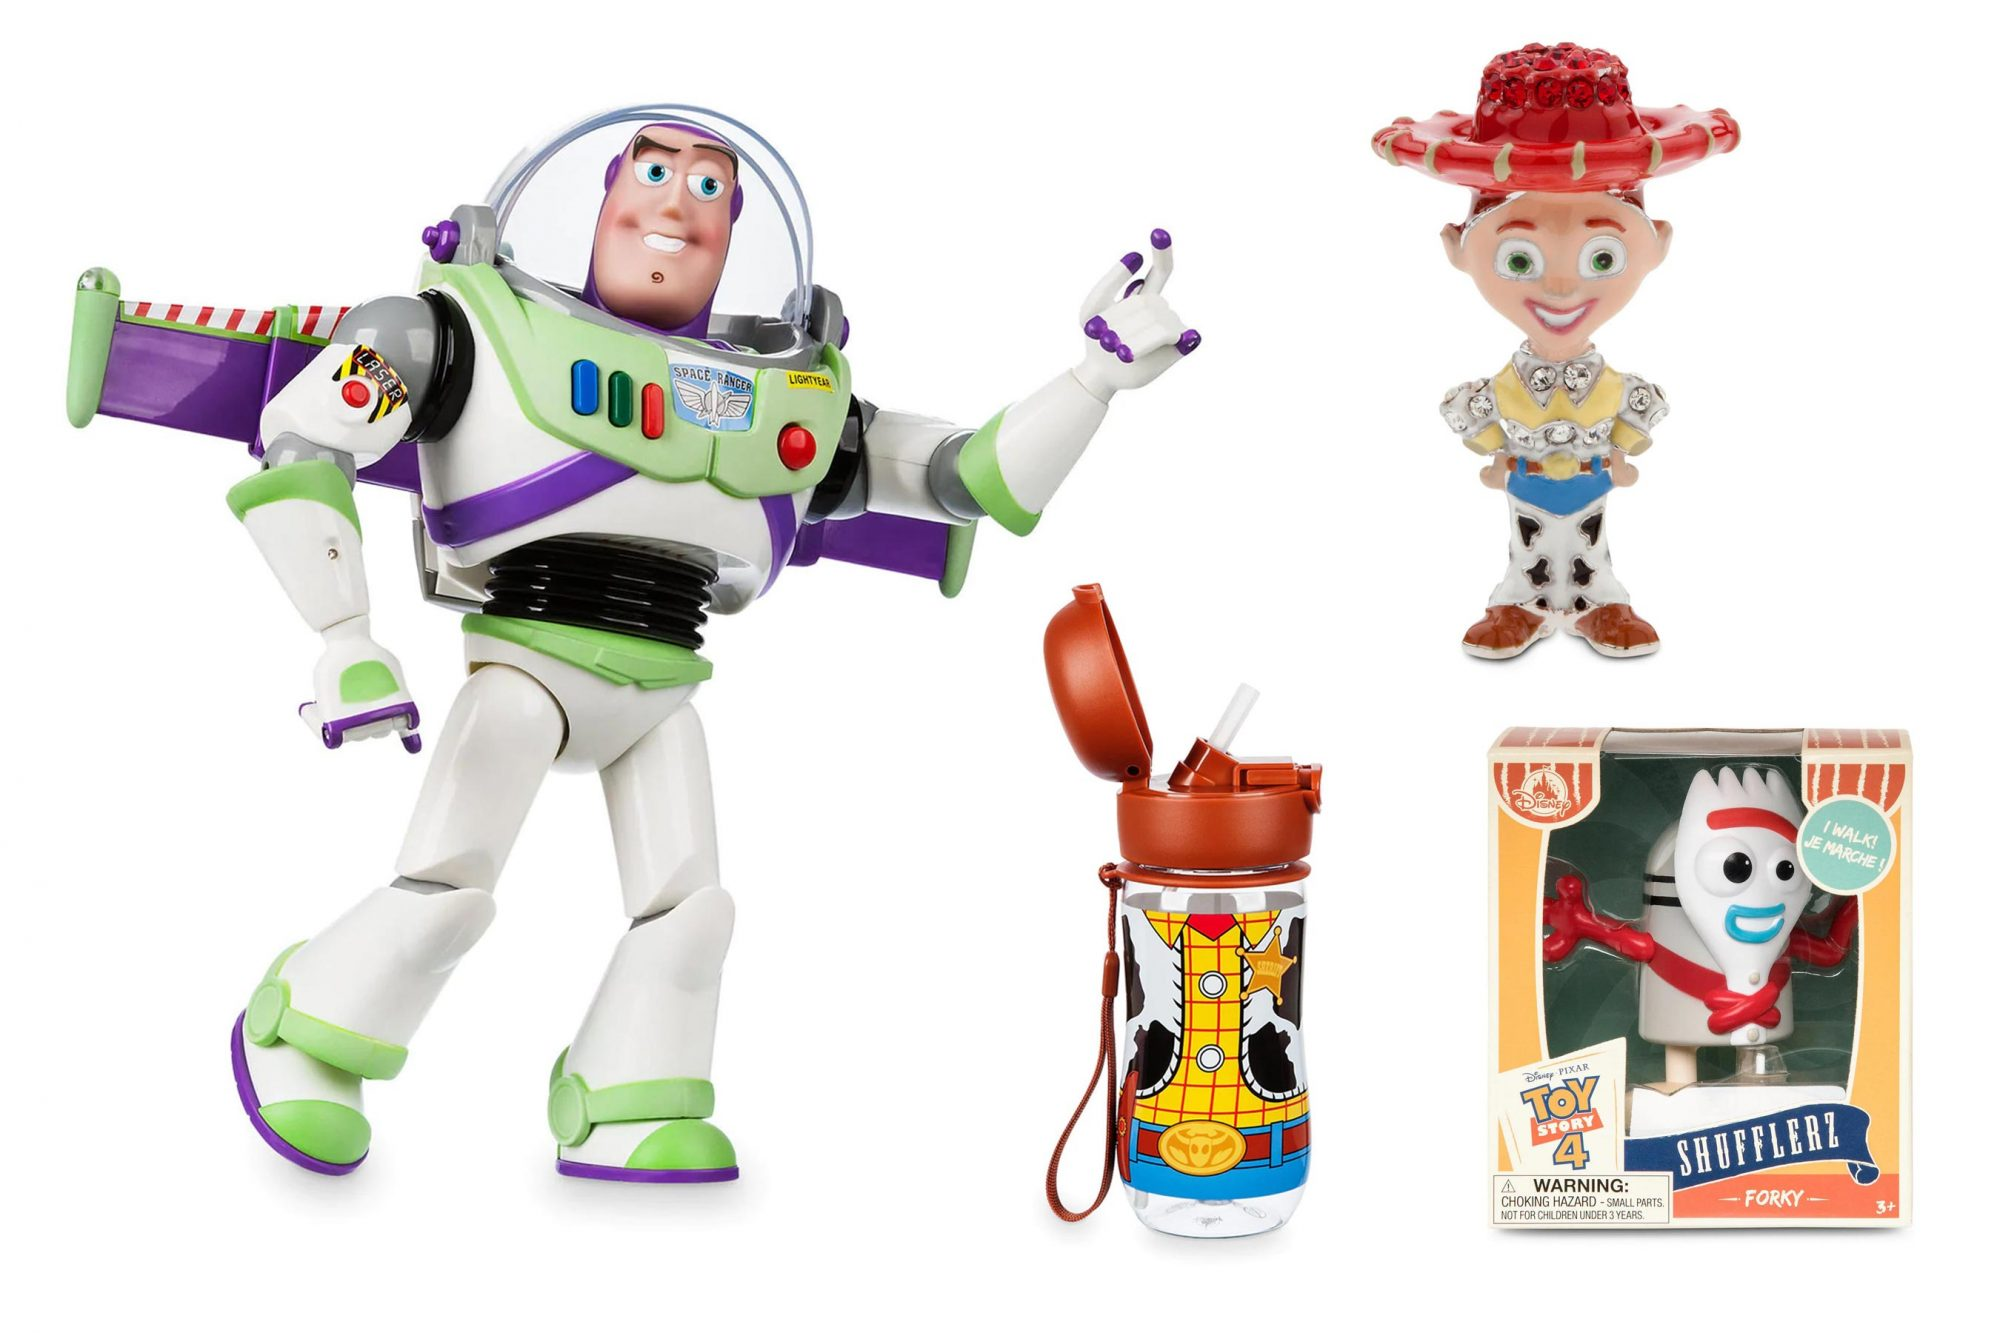 Toy Story toys and accessories